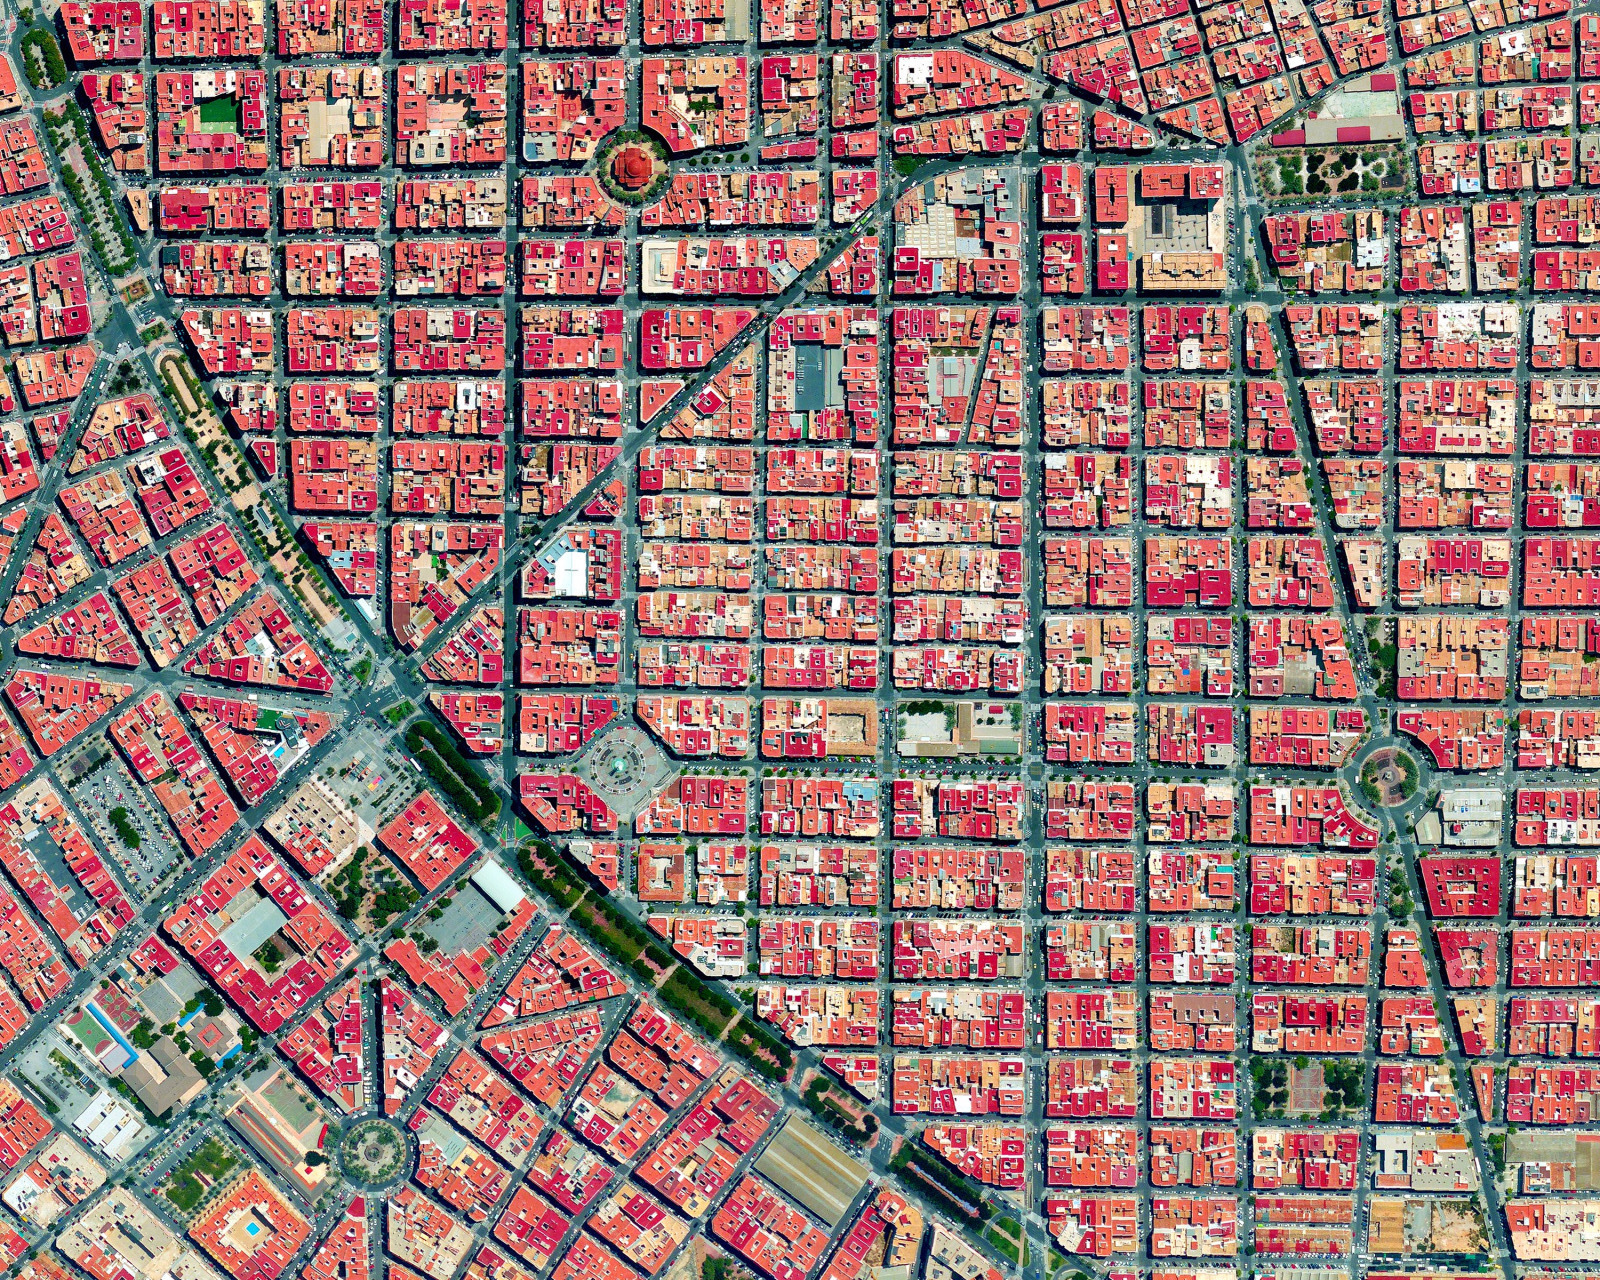 Orthogonal Grids and Their Variations in 17 Cities Viewed from Above